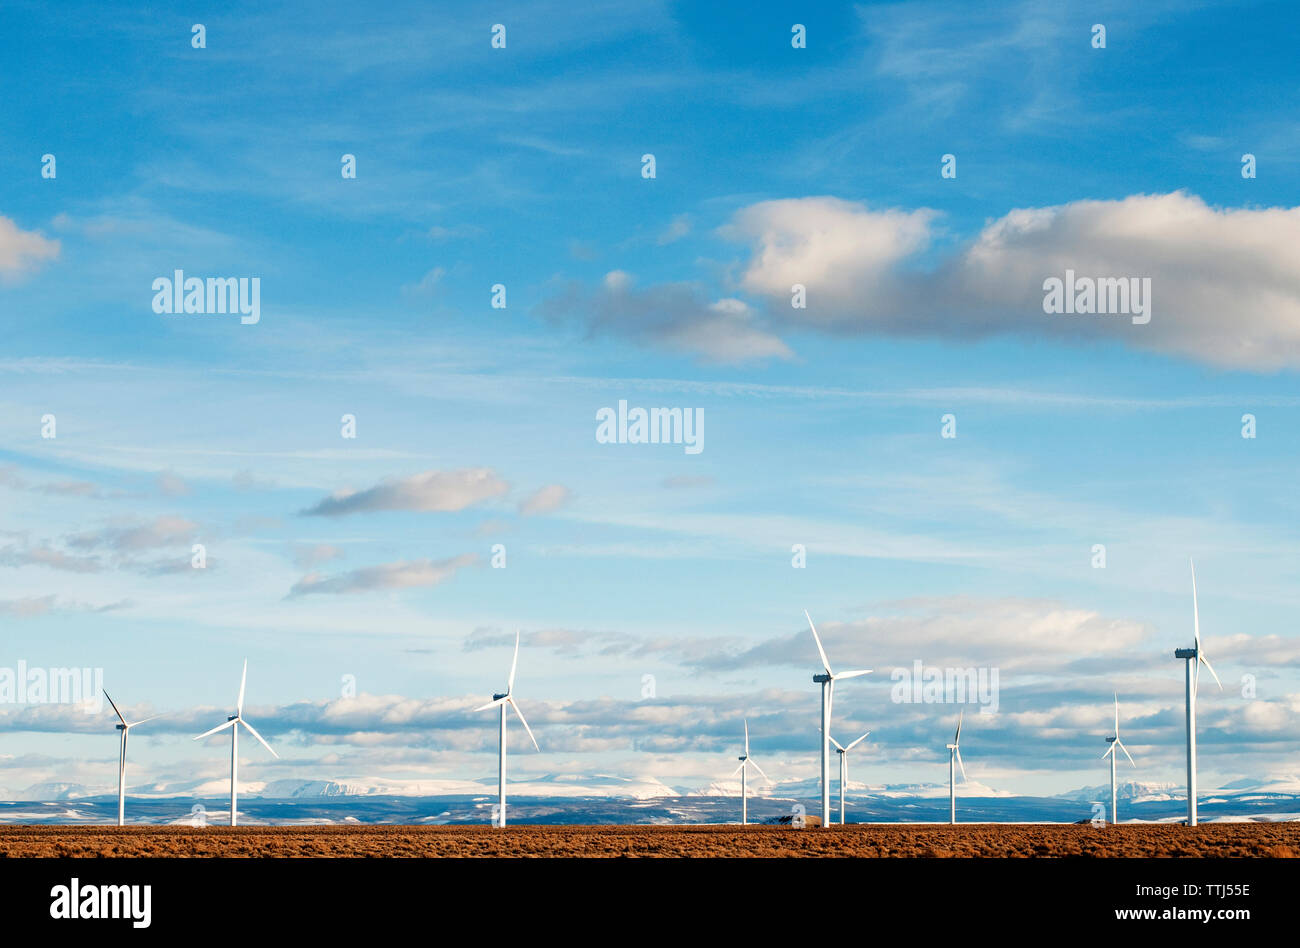 Wind turbines against blue sky on sunny day Stock Photo